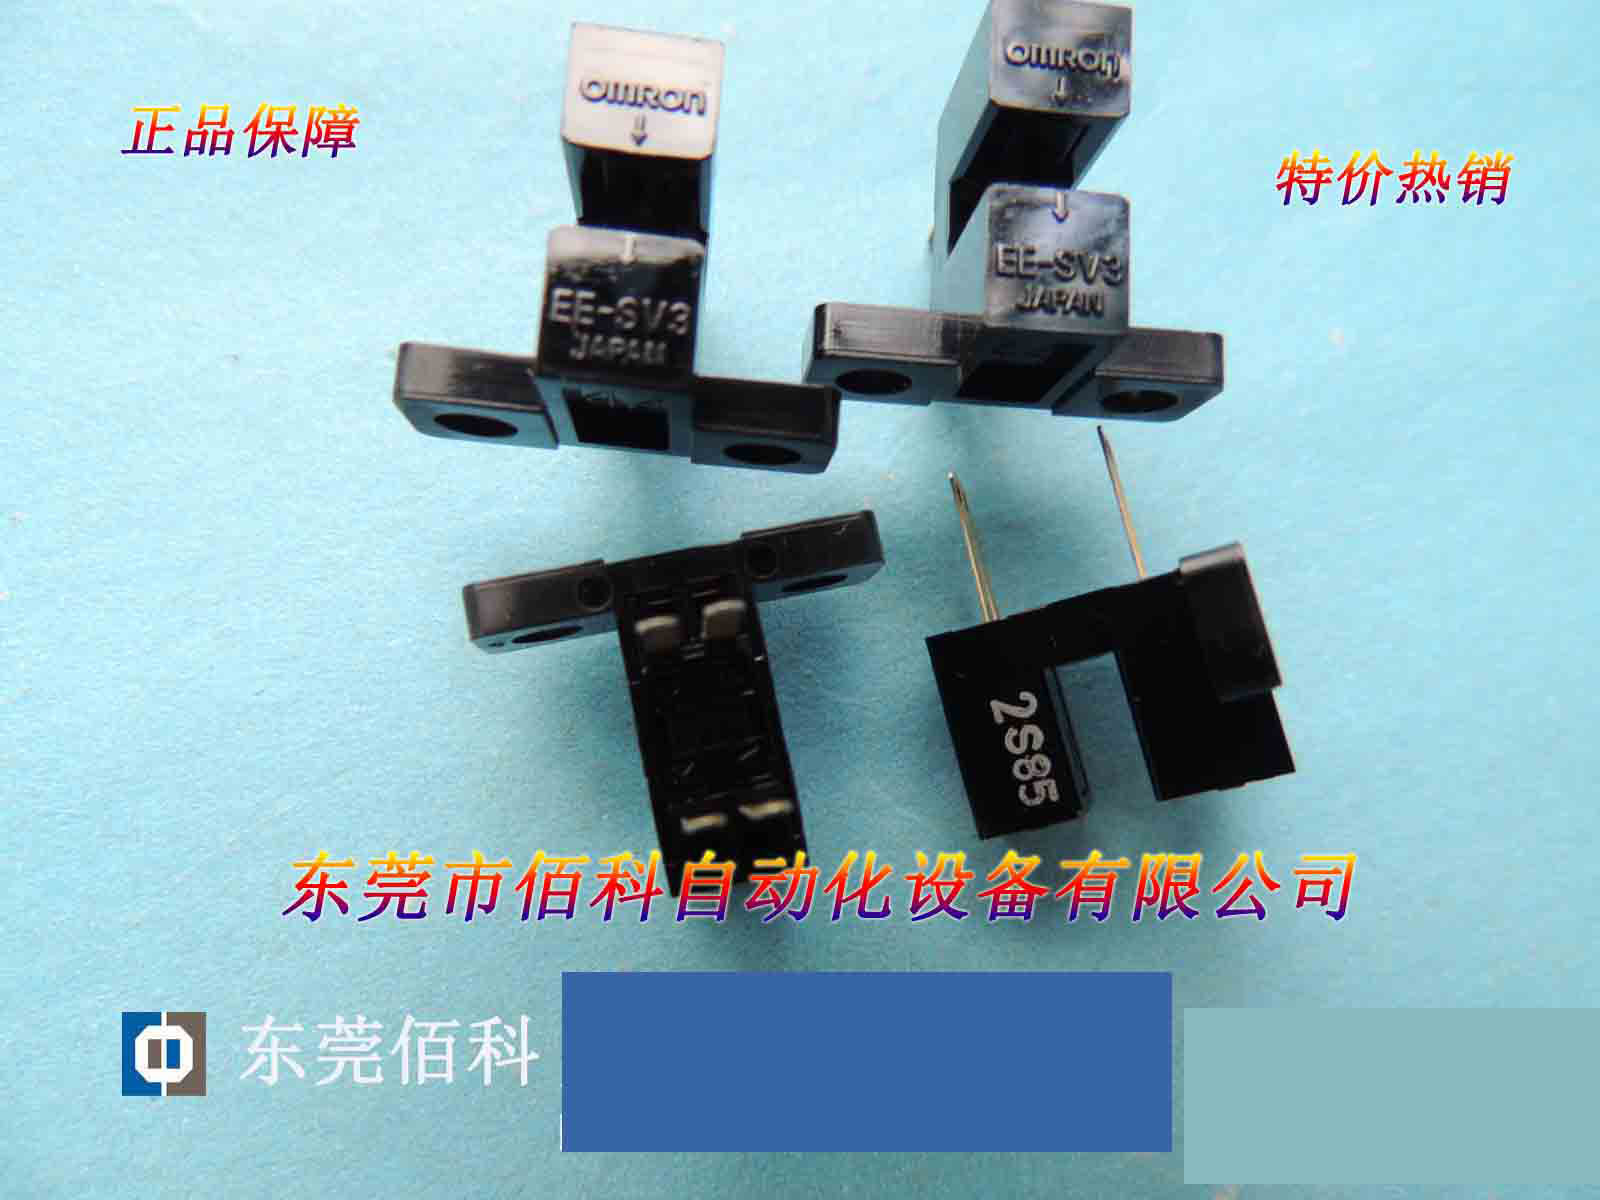 New Omron Photoelectric Switch EE-SV3 with Special PriceNew Omron Photoelectric Switch EE-SV3 with Special Price